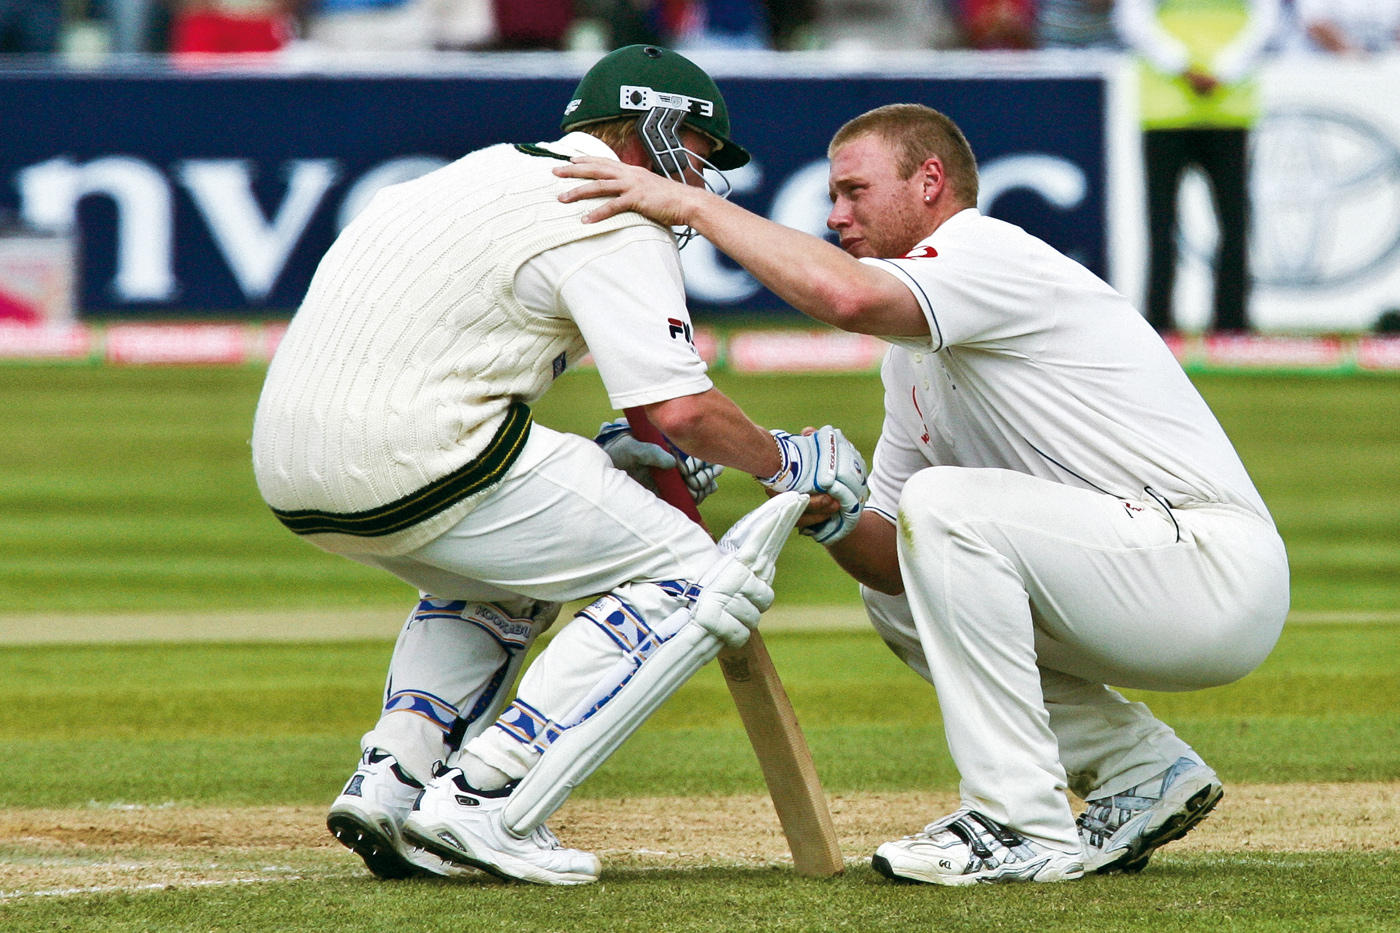 Andrew Flintoff immediately consoles Brett Lee, as England took the final wicket to win, on a nail-biting fourth day at Edgbaston, England v Australia, August 7, 2005